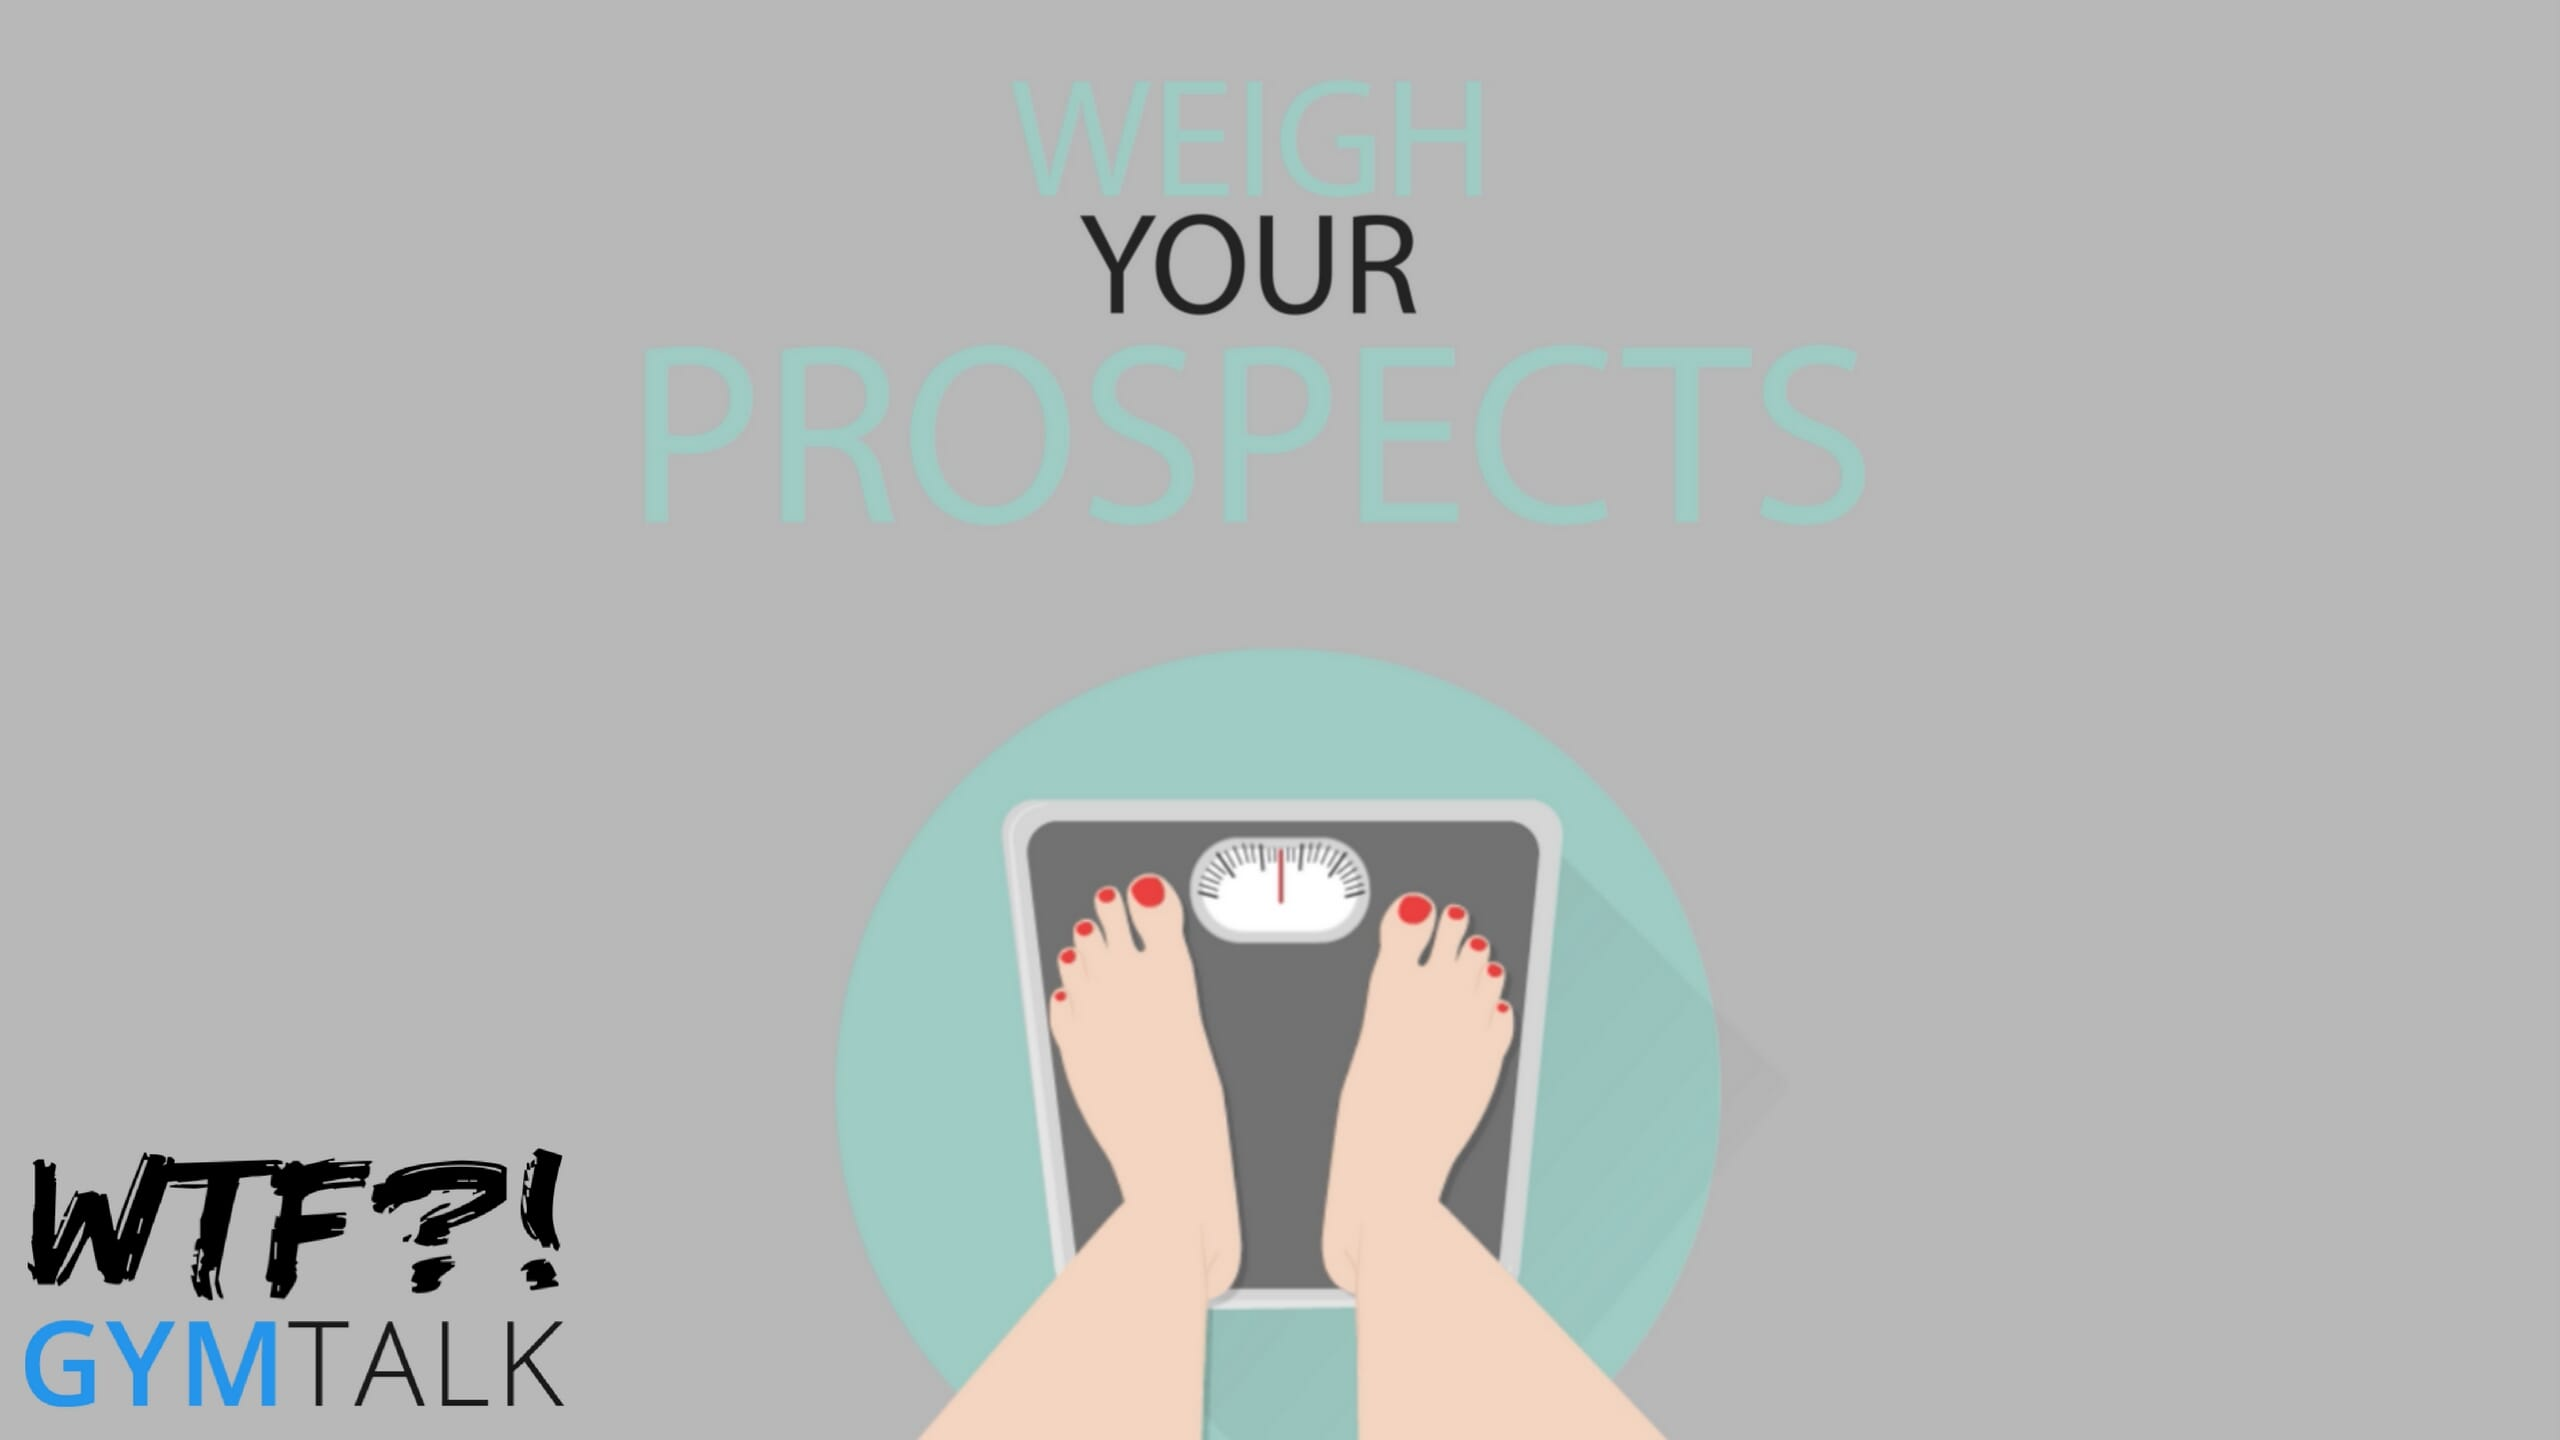 WTF Gym Talk | Weight Your Prospects